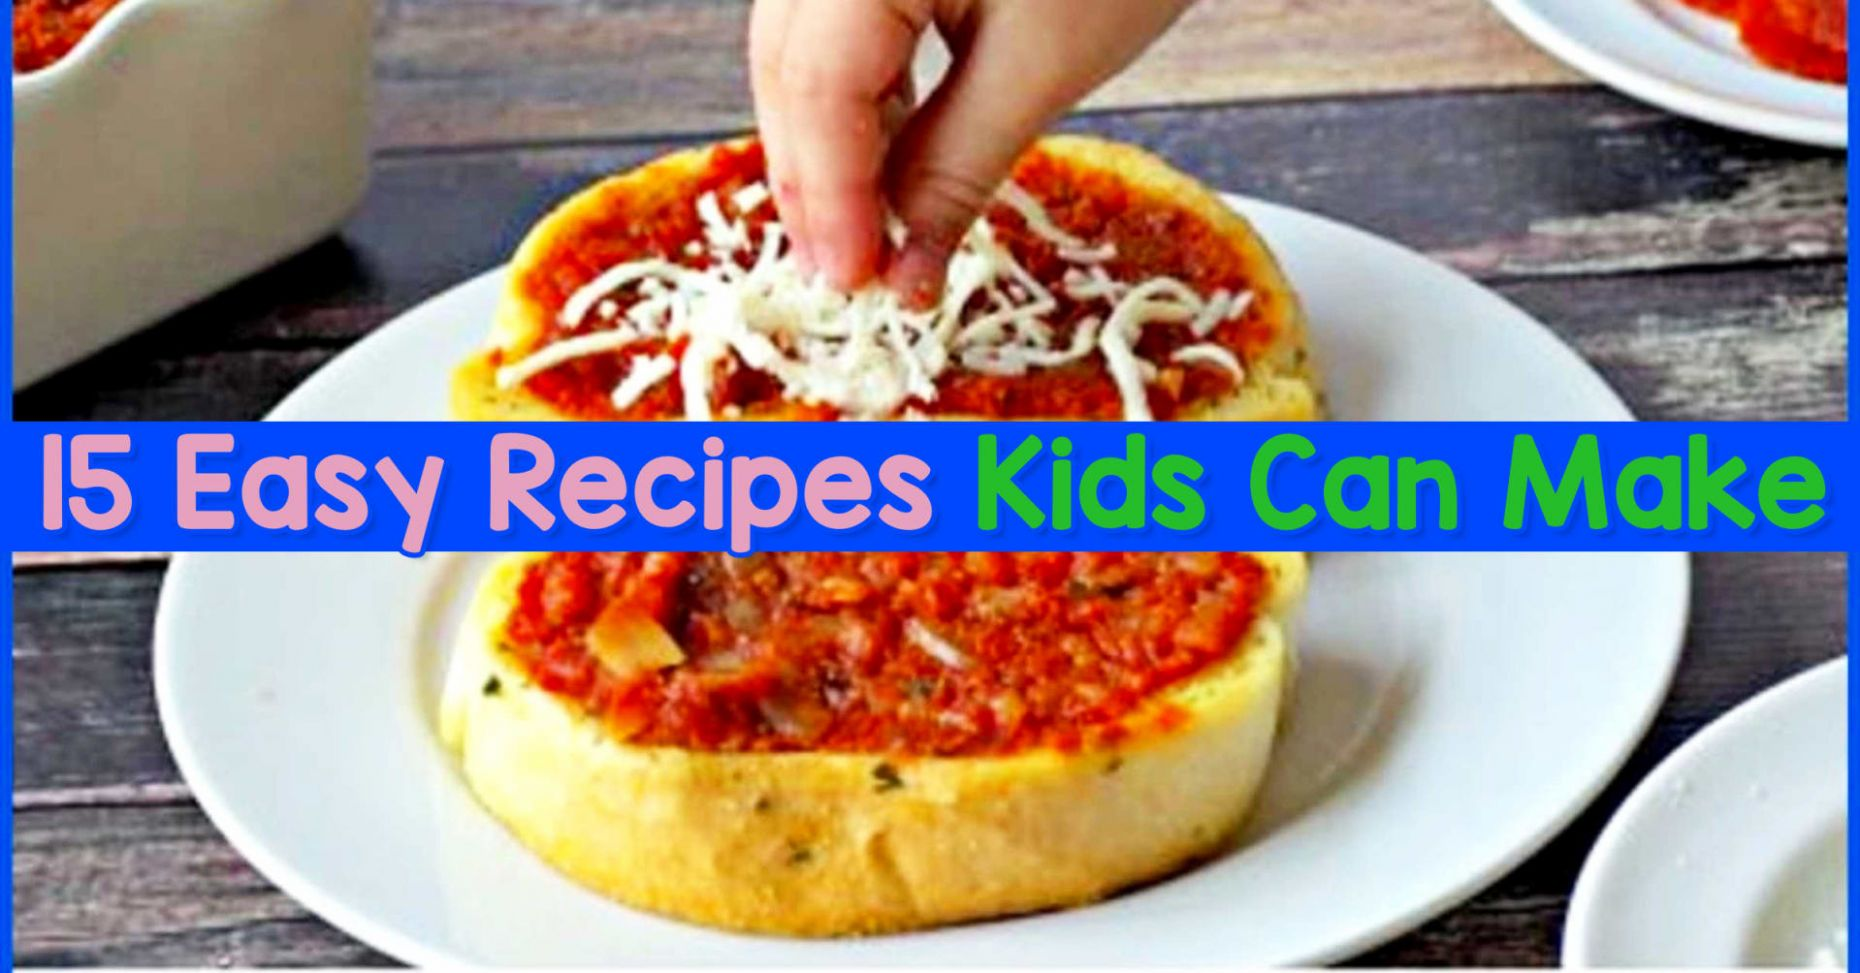 12 Fun & Easy Recipes for Kids To Make - Clever DIY Ideas